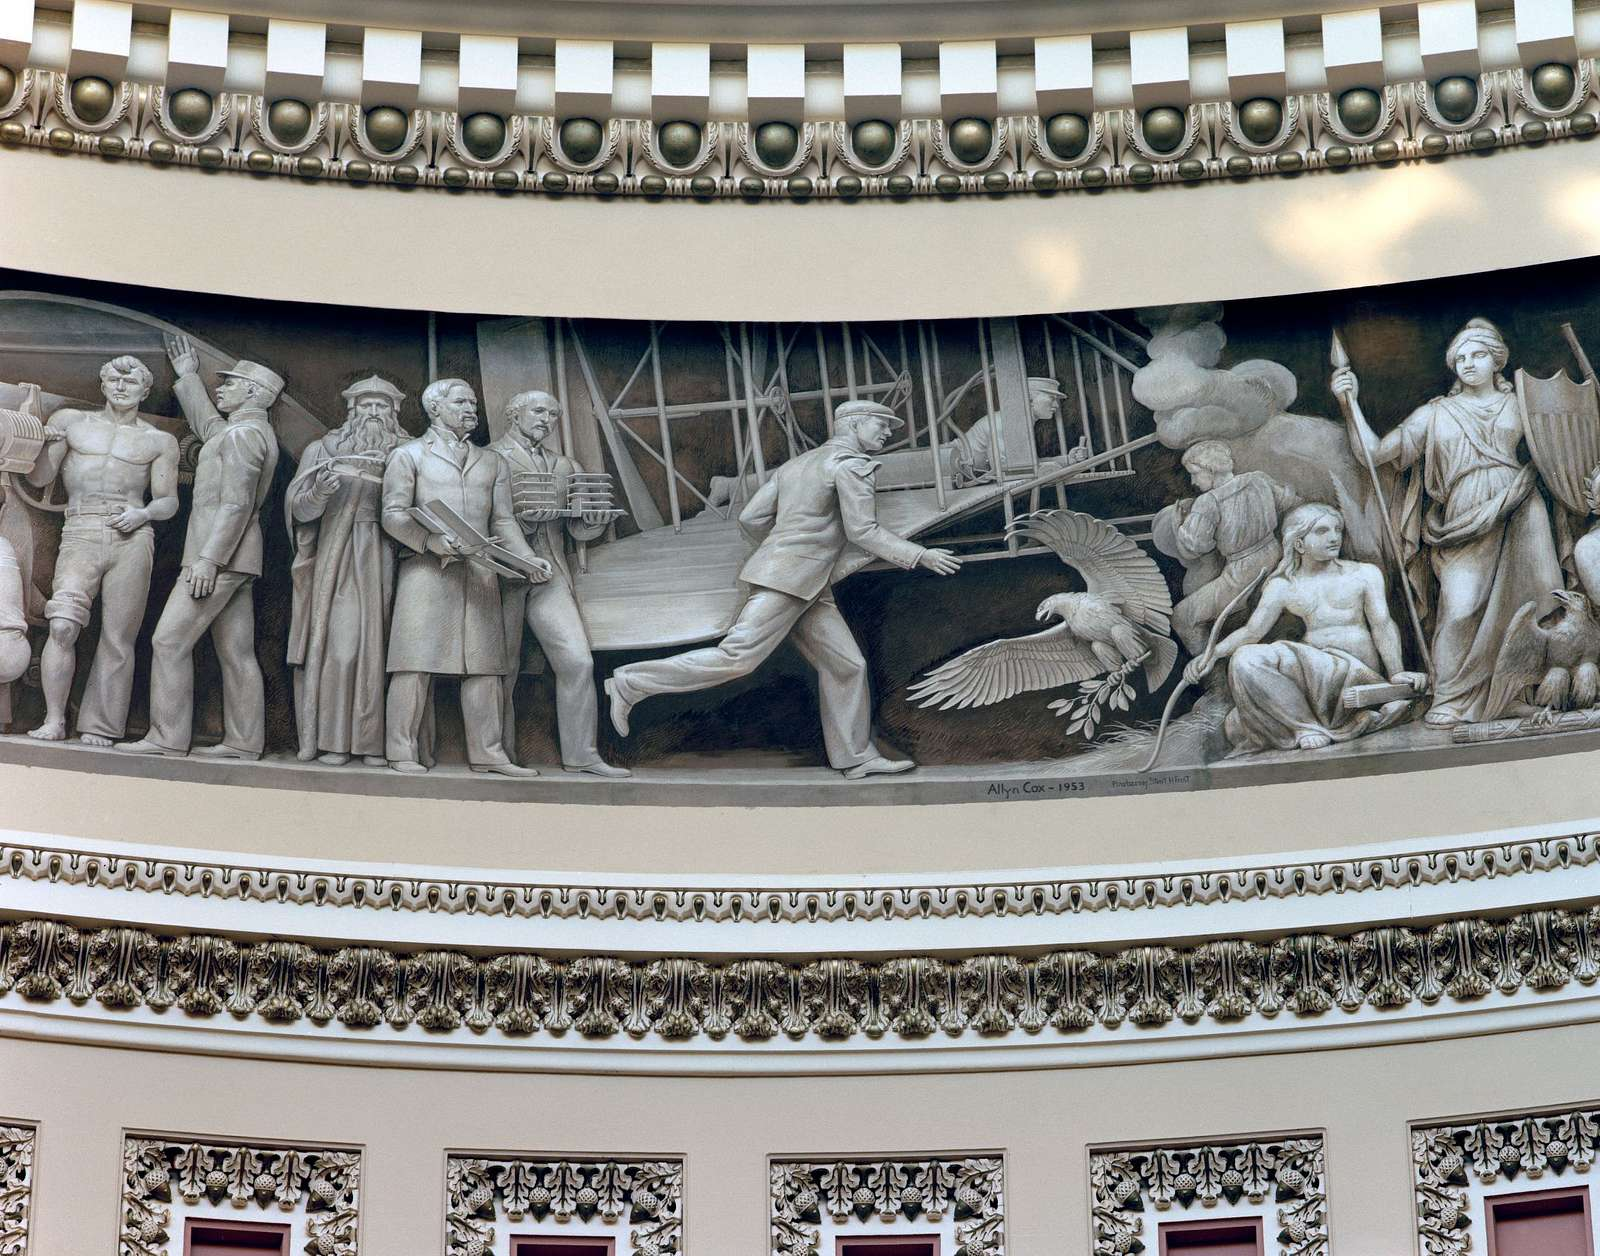 Wright Brothers frieze in U.S. Capitol dome, Washington, D.C.